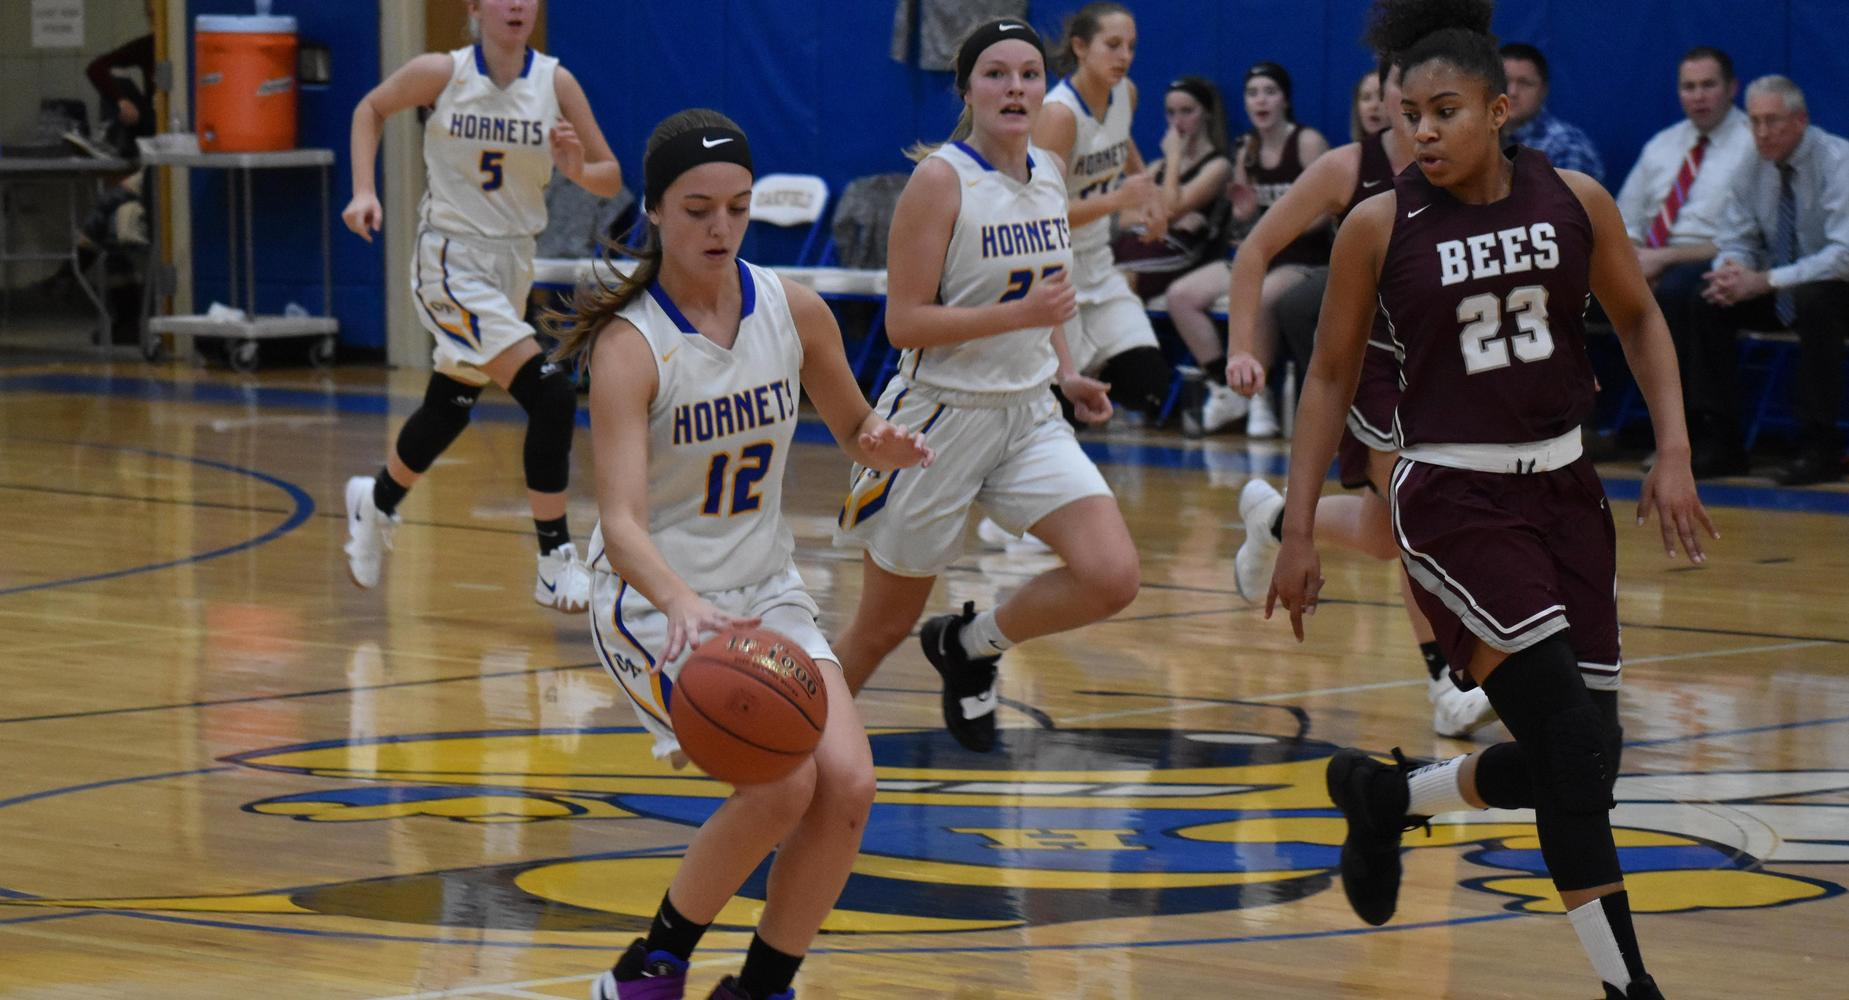 girls basketball players running on court